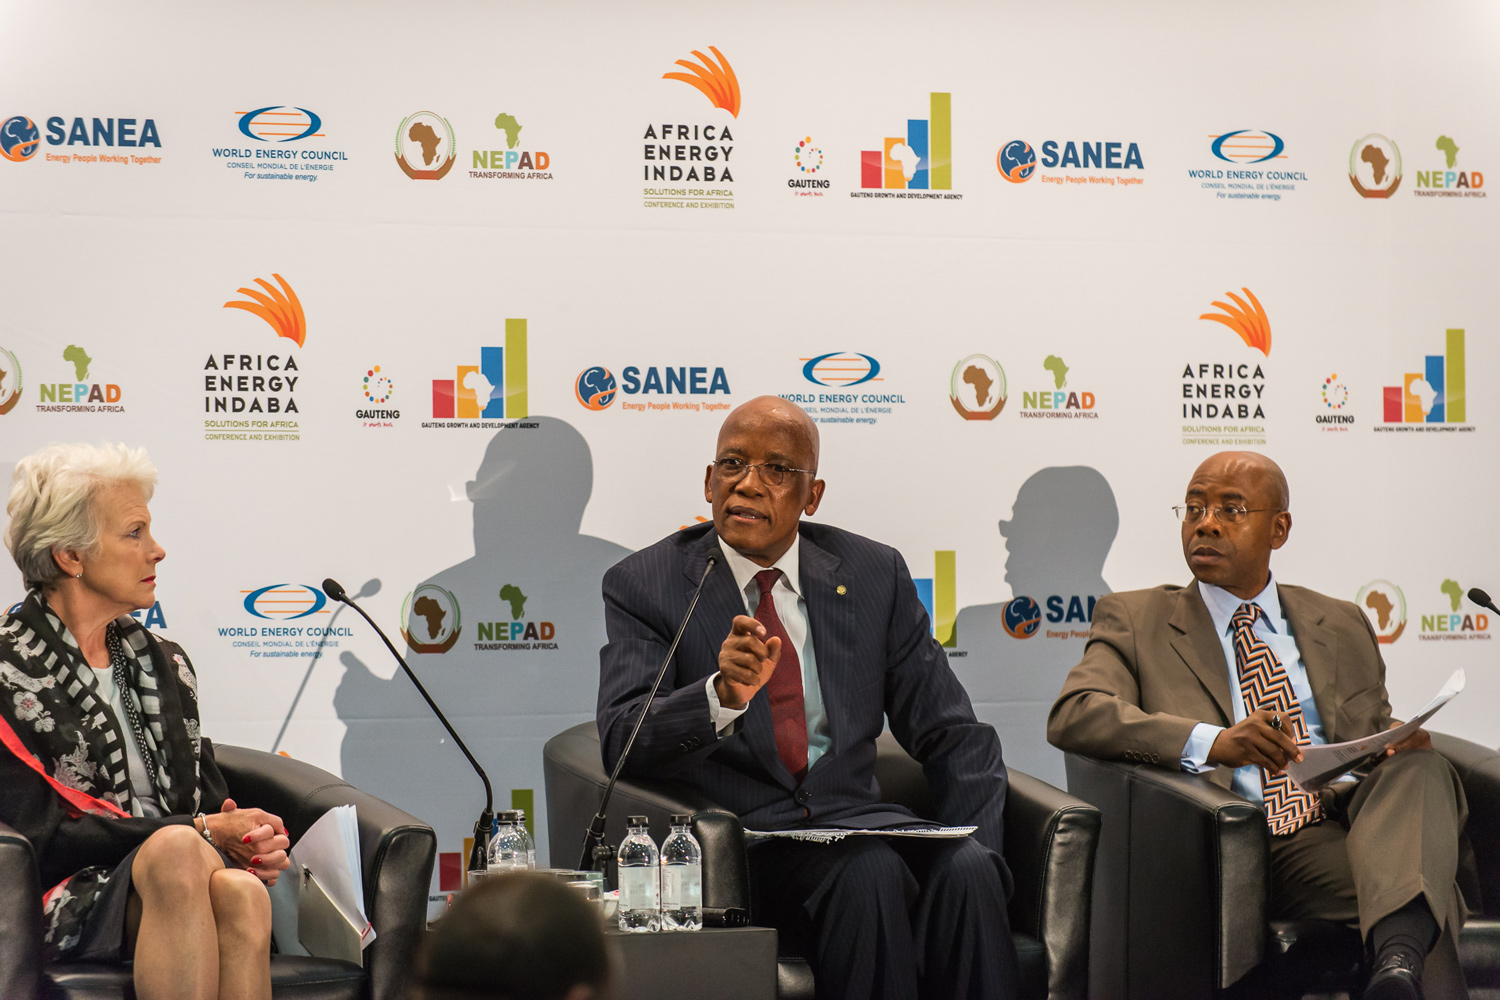 World Energy Council's Year of Africa to kick off at the 2015 Africa Energy Indaba